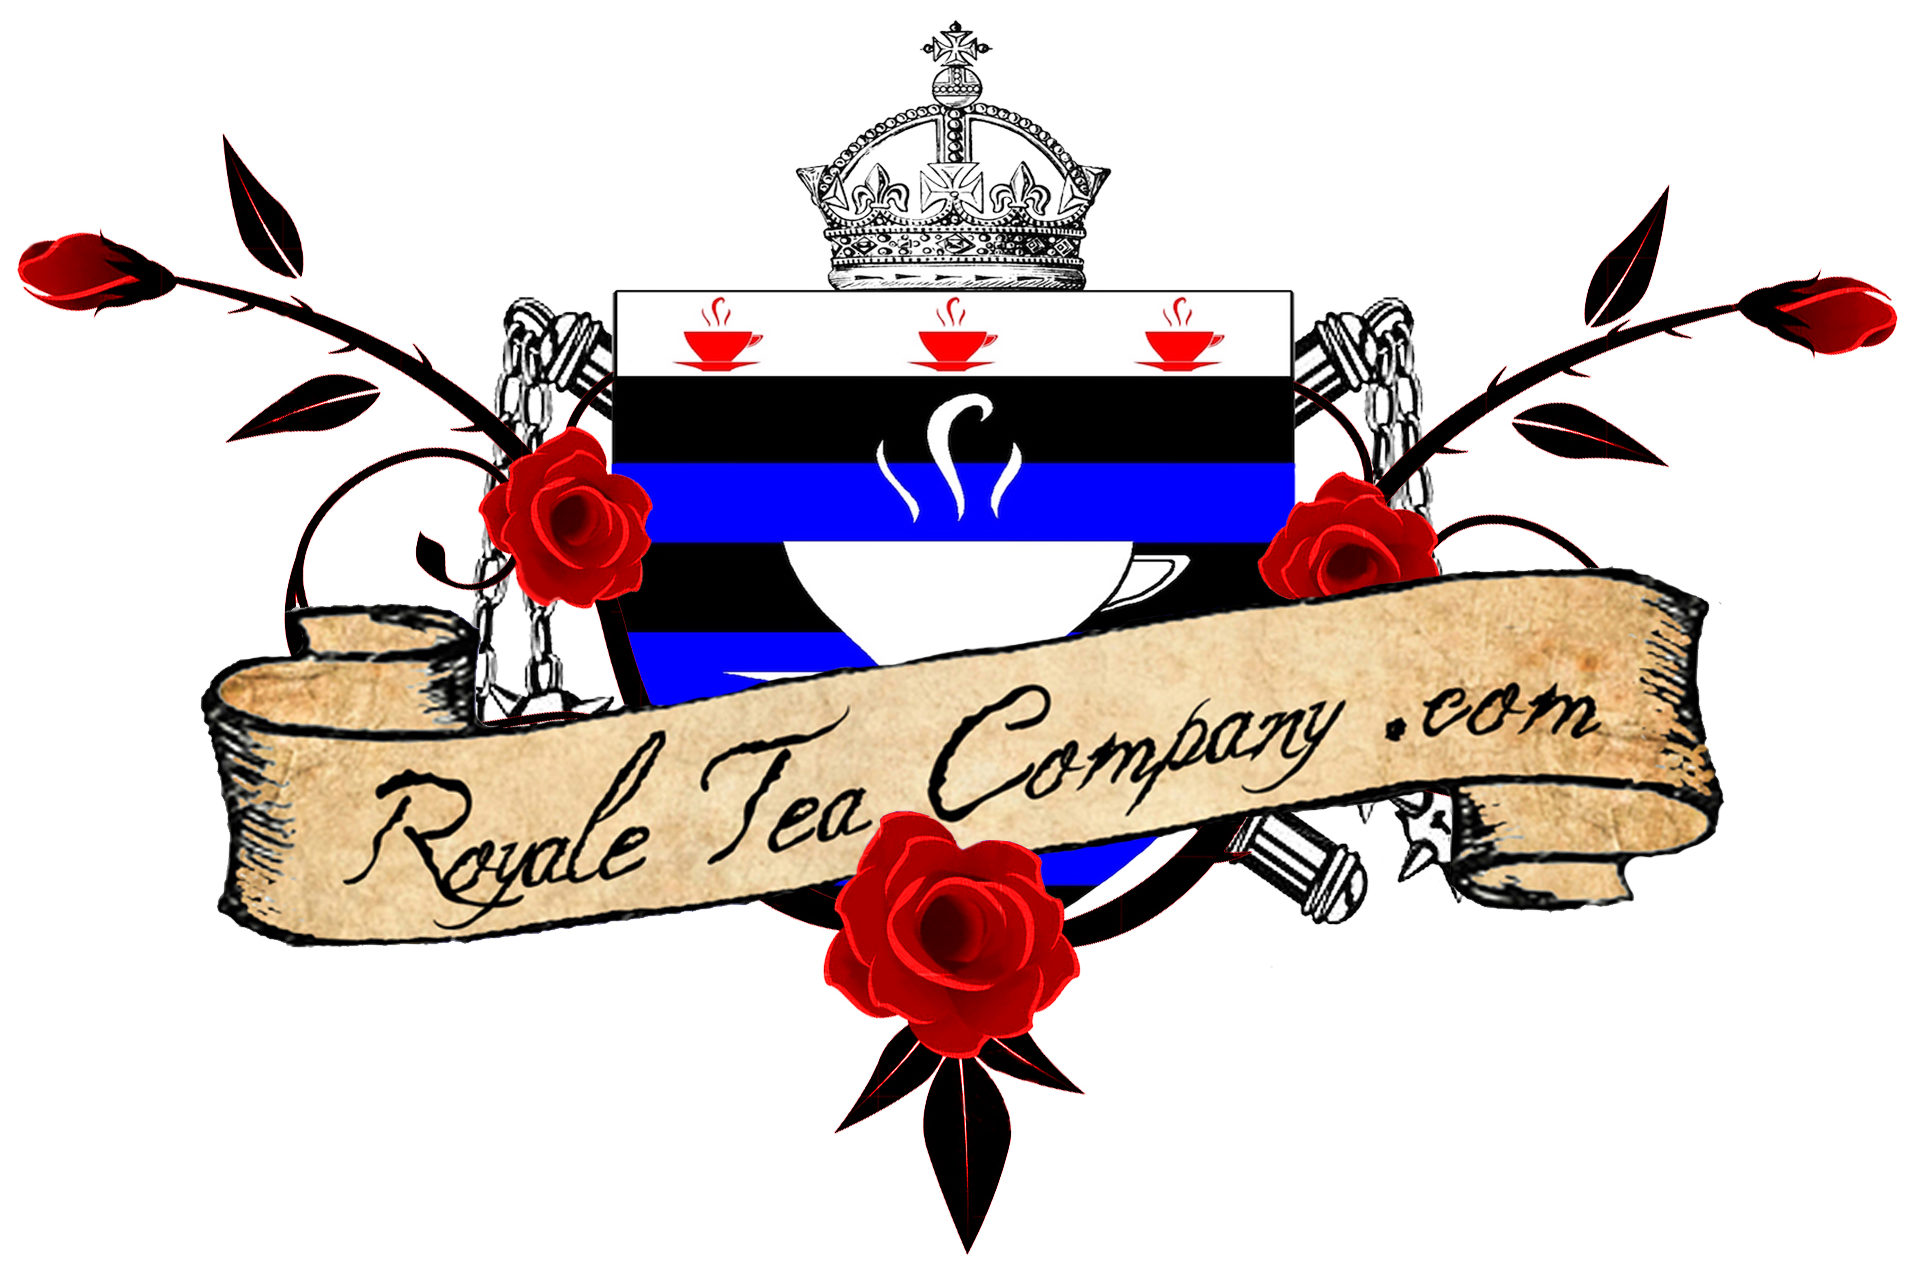 Royale Tea Company